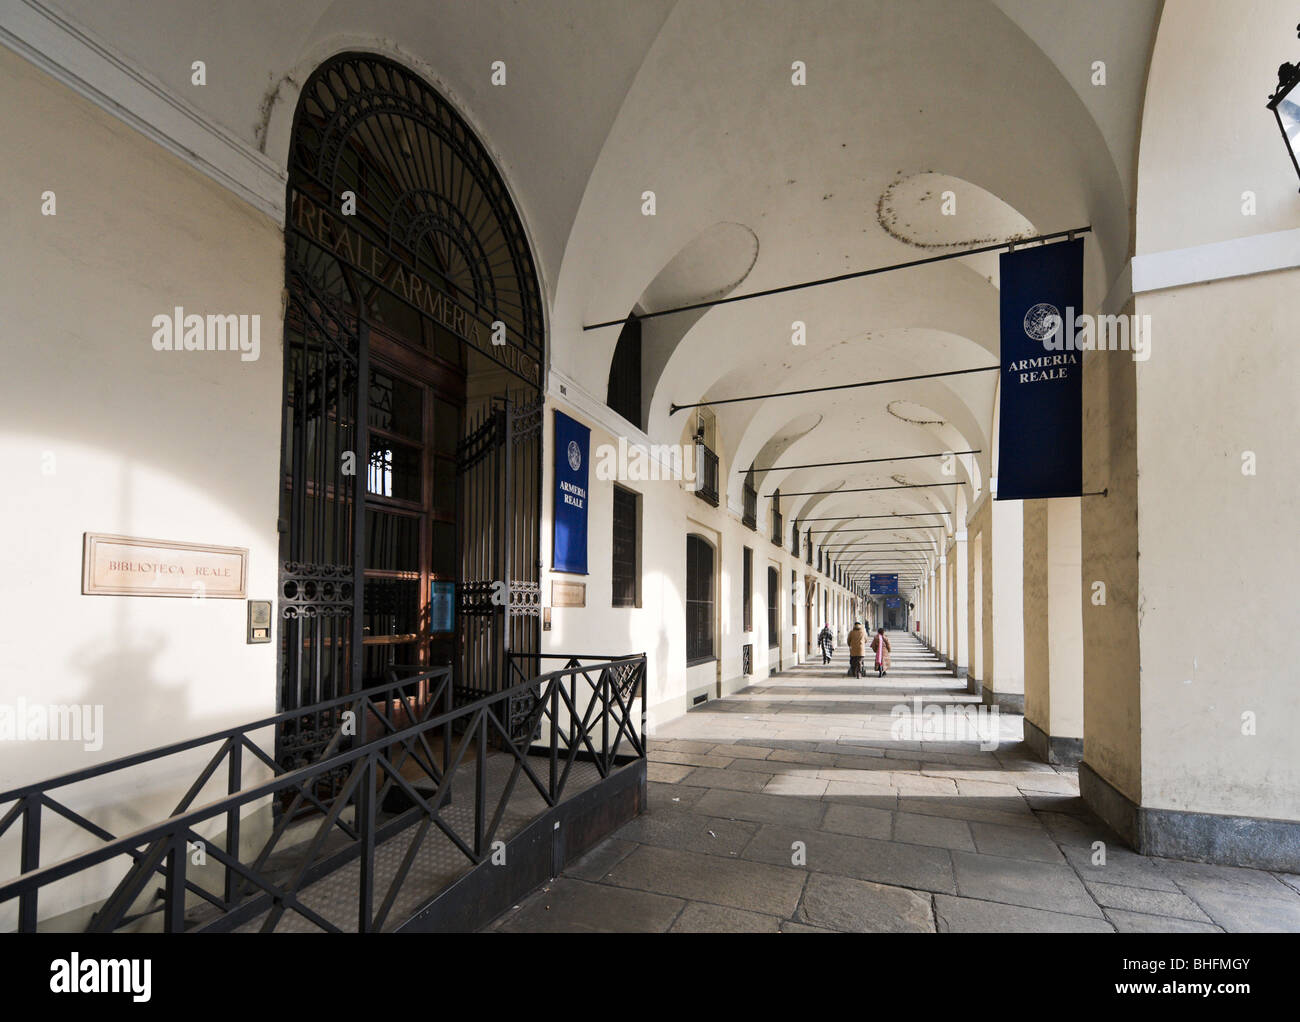 Portico outside the Armeria Reale (Royal Armoury), Piazza Castello, Turin, Piemonte, Italy - Stock Image